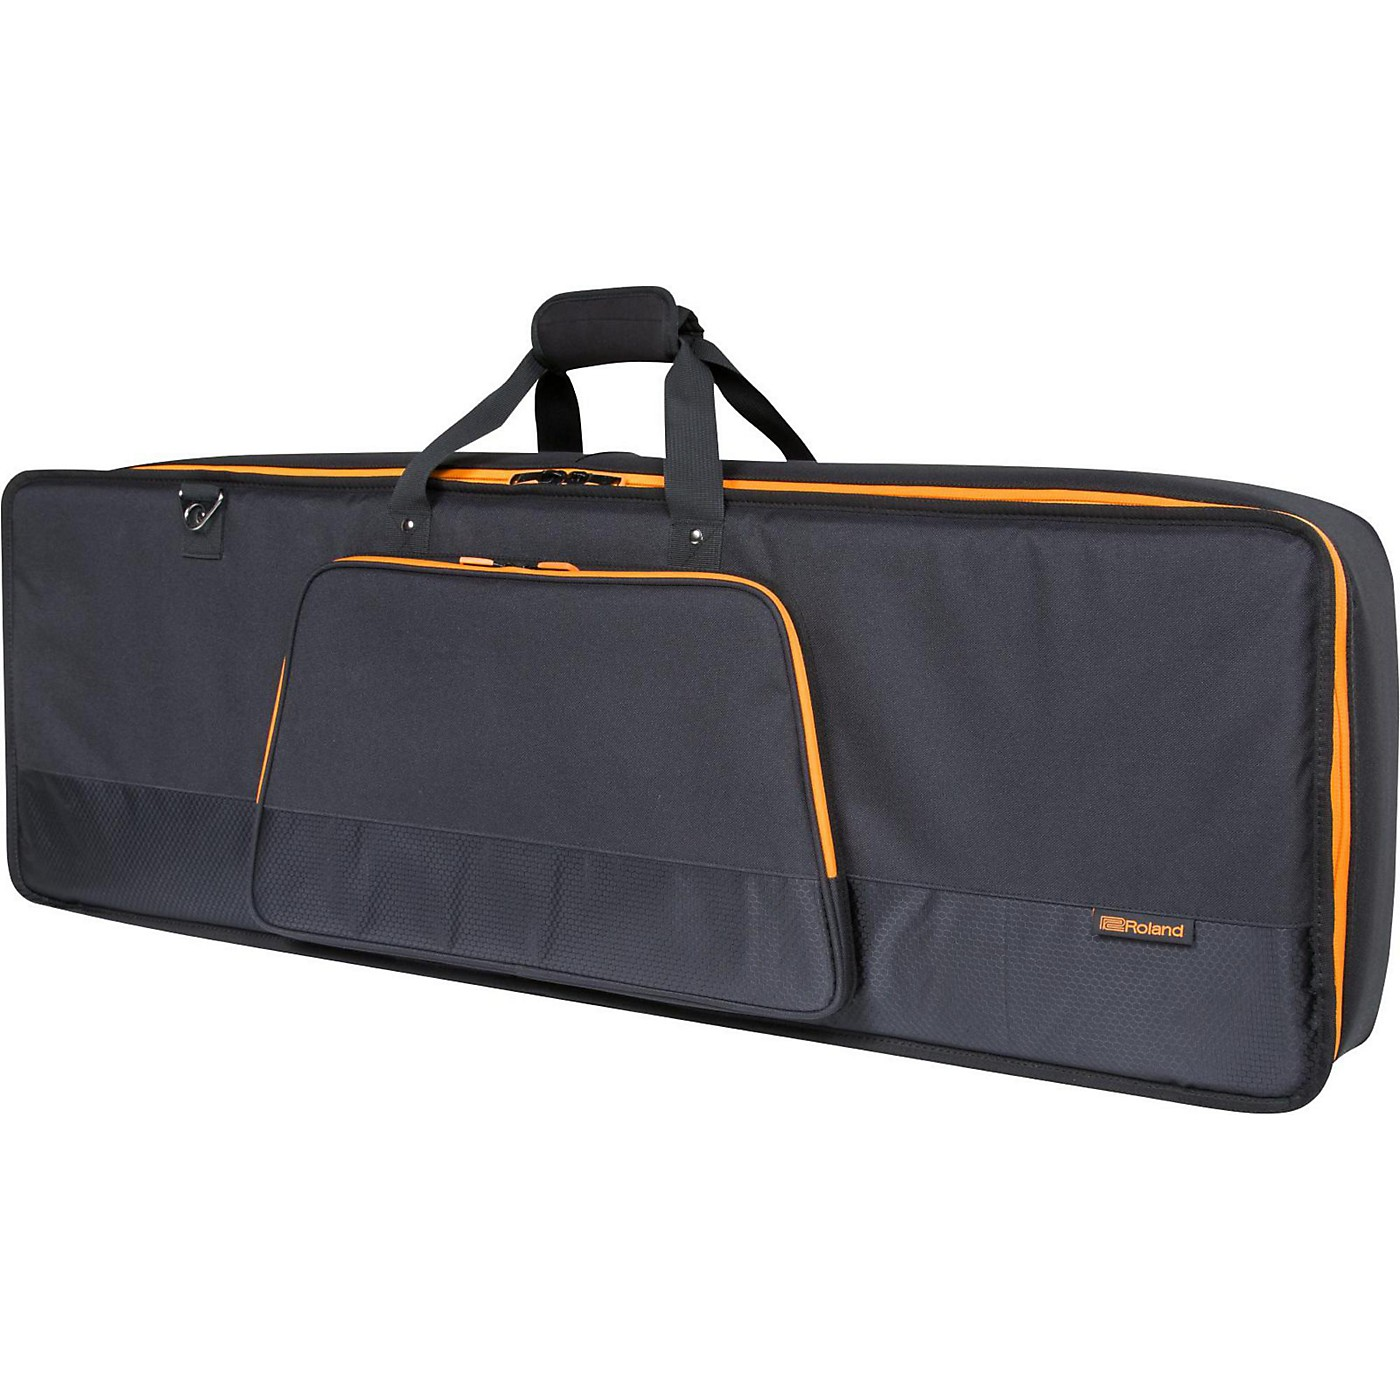 Roland Gold Series Keyboard Bag With Backpack Straps - Deep thumbnail